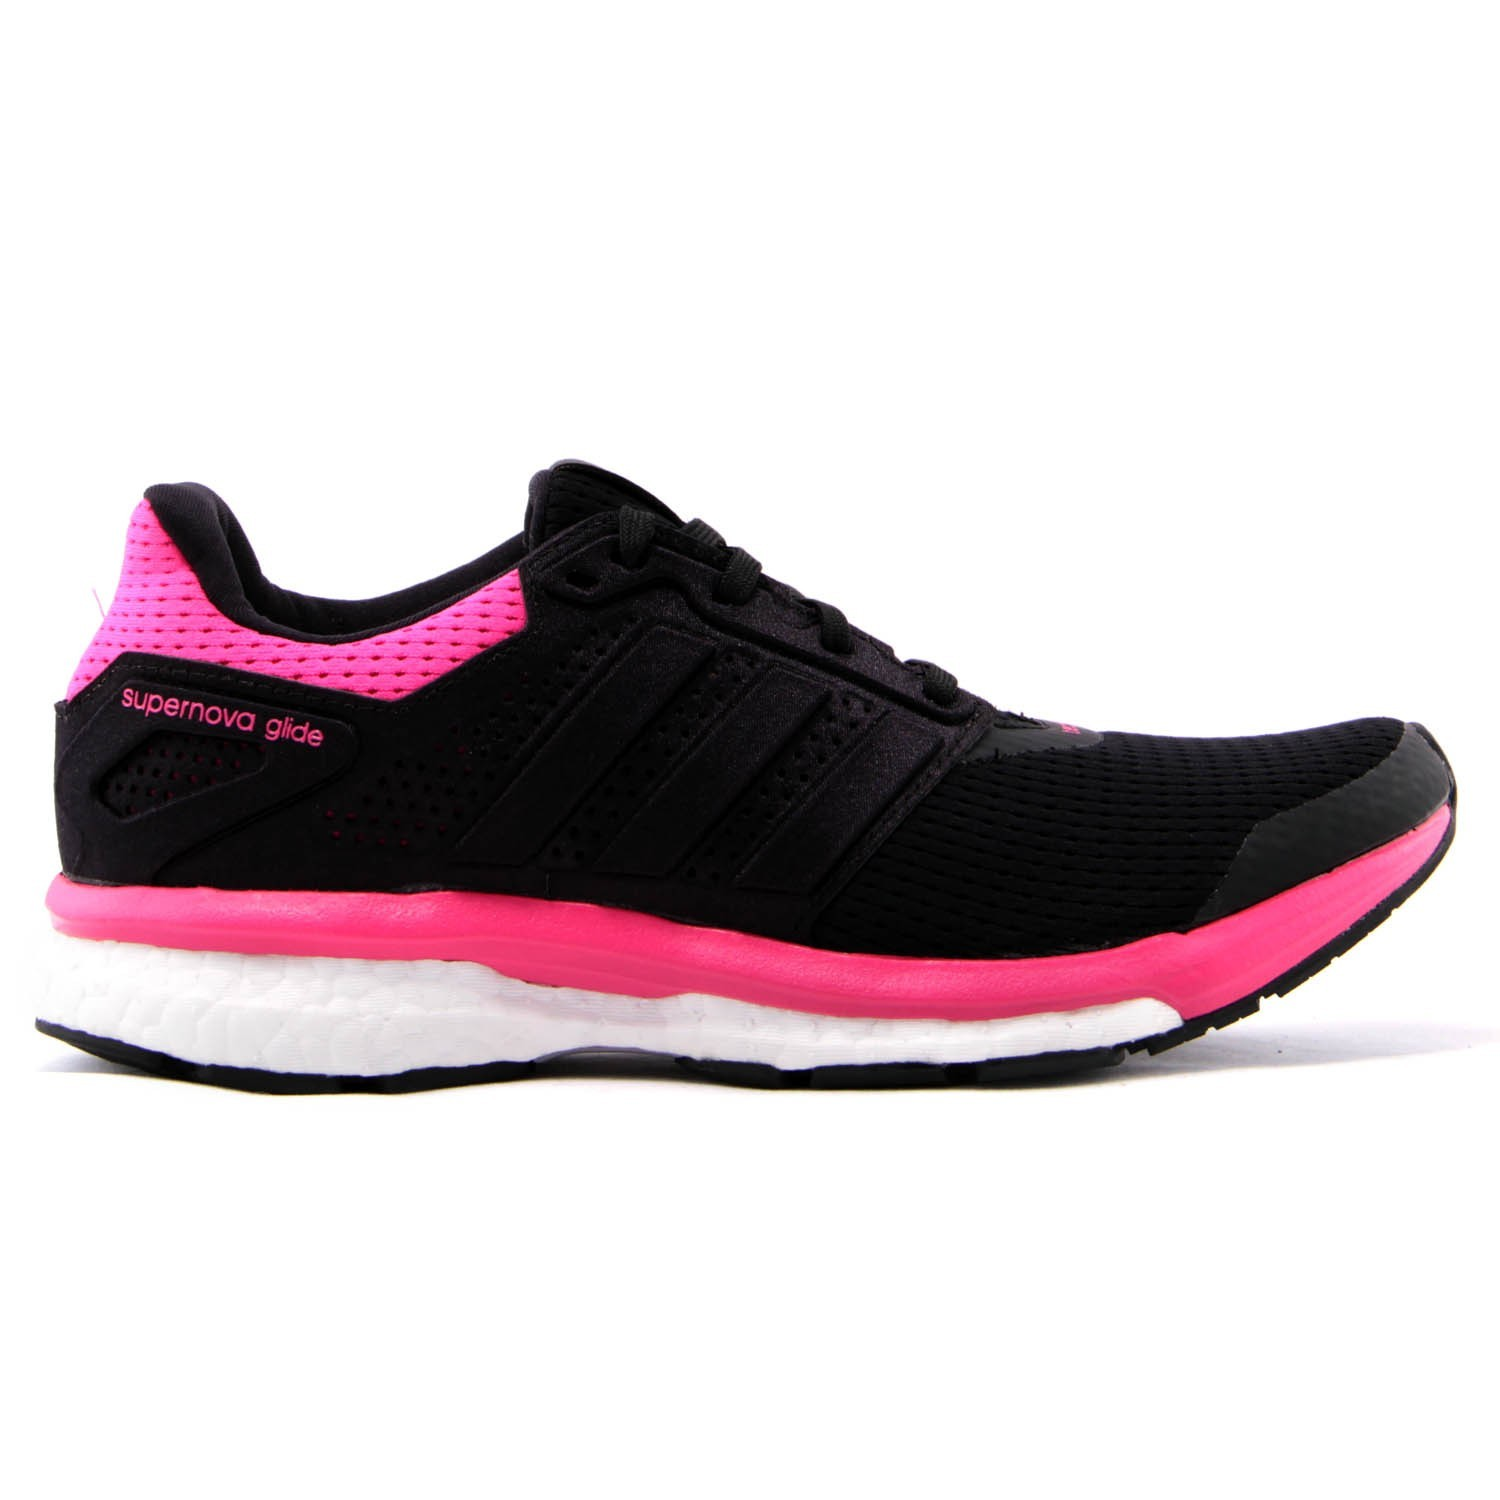 adidas supernova glide boost 8 mujer. Black Bedroom Furniture Sets. Home Design Ideas